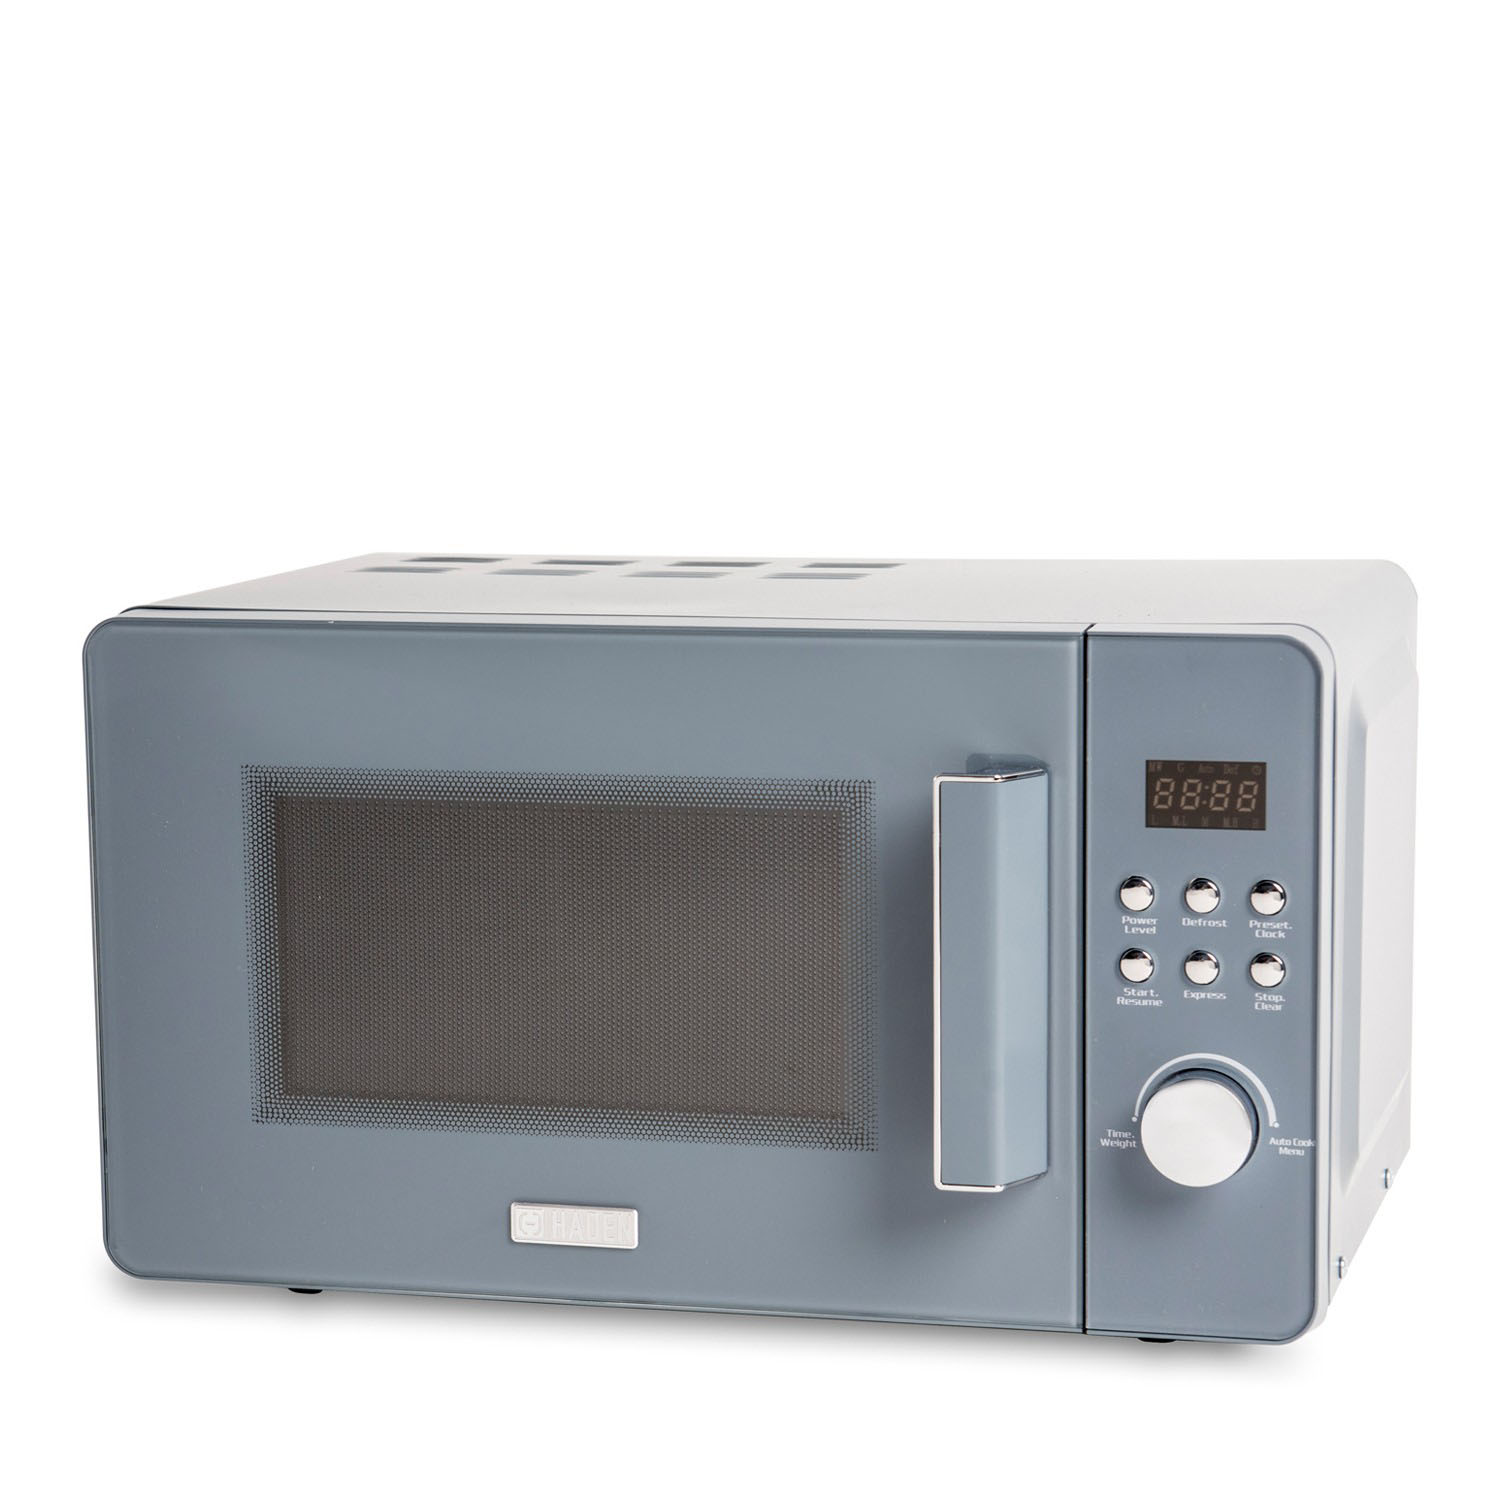 Image of Haden Perth Microwave, Slate